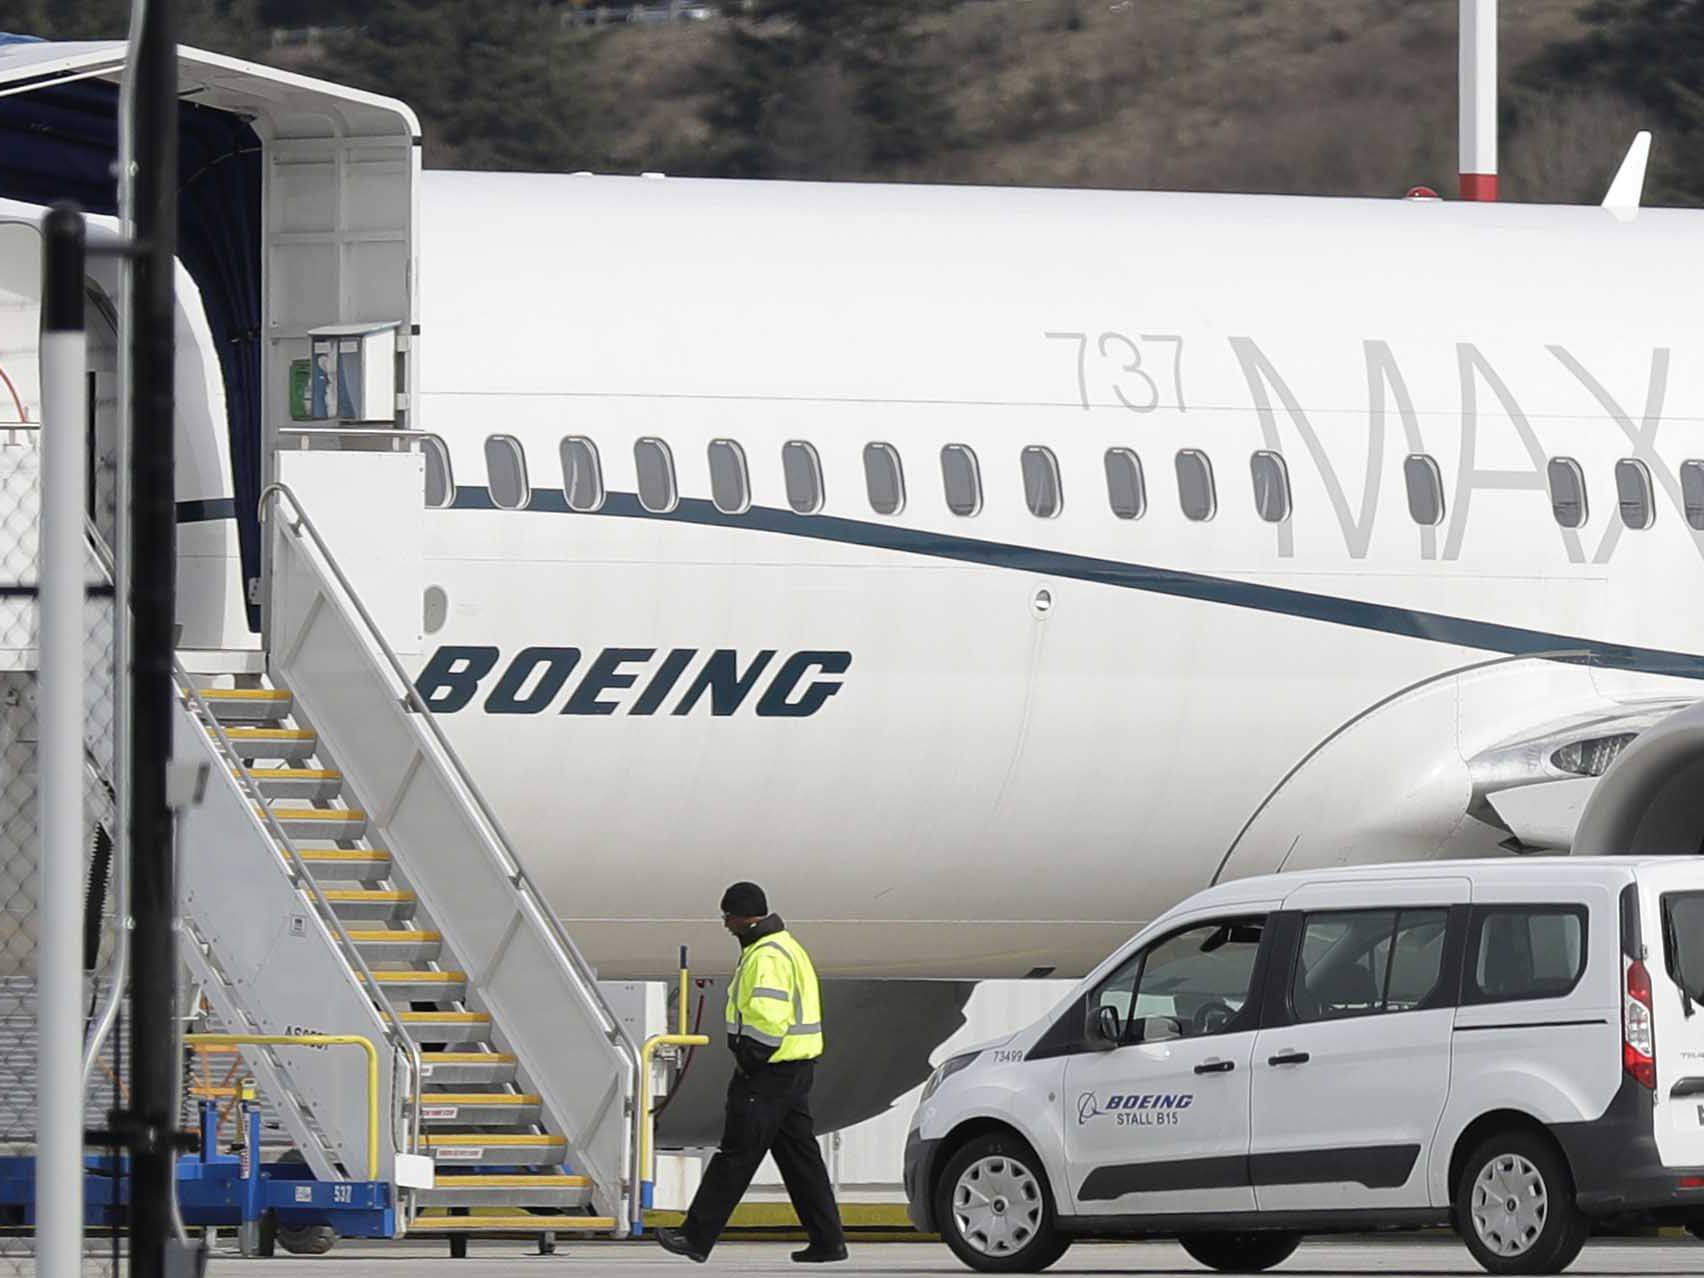 Boeing to make safety feature standard on troubled Max jets